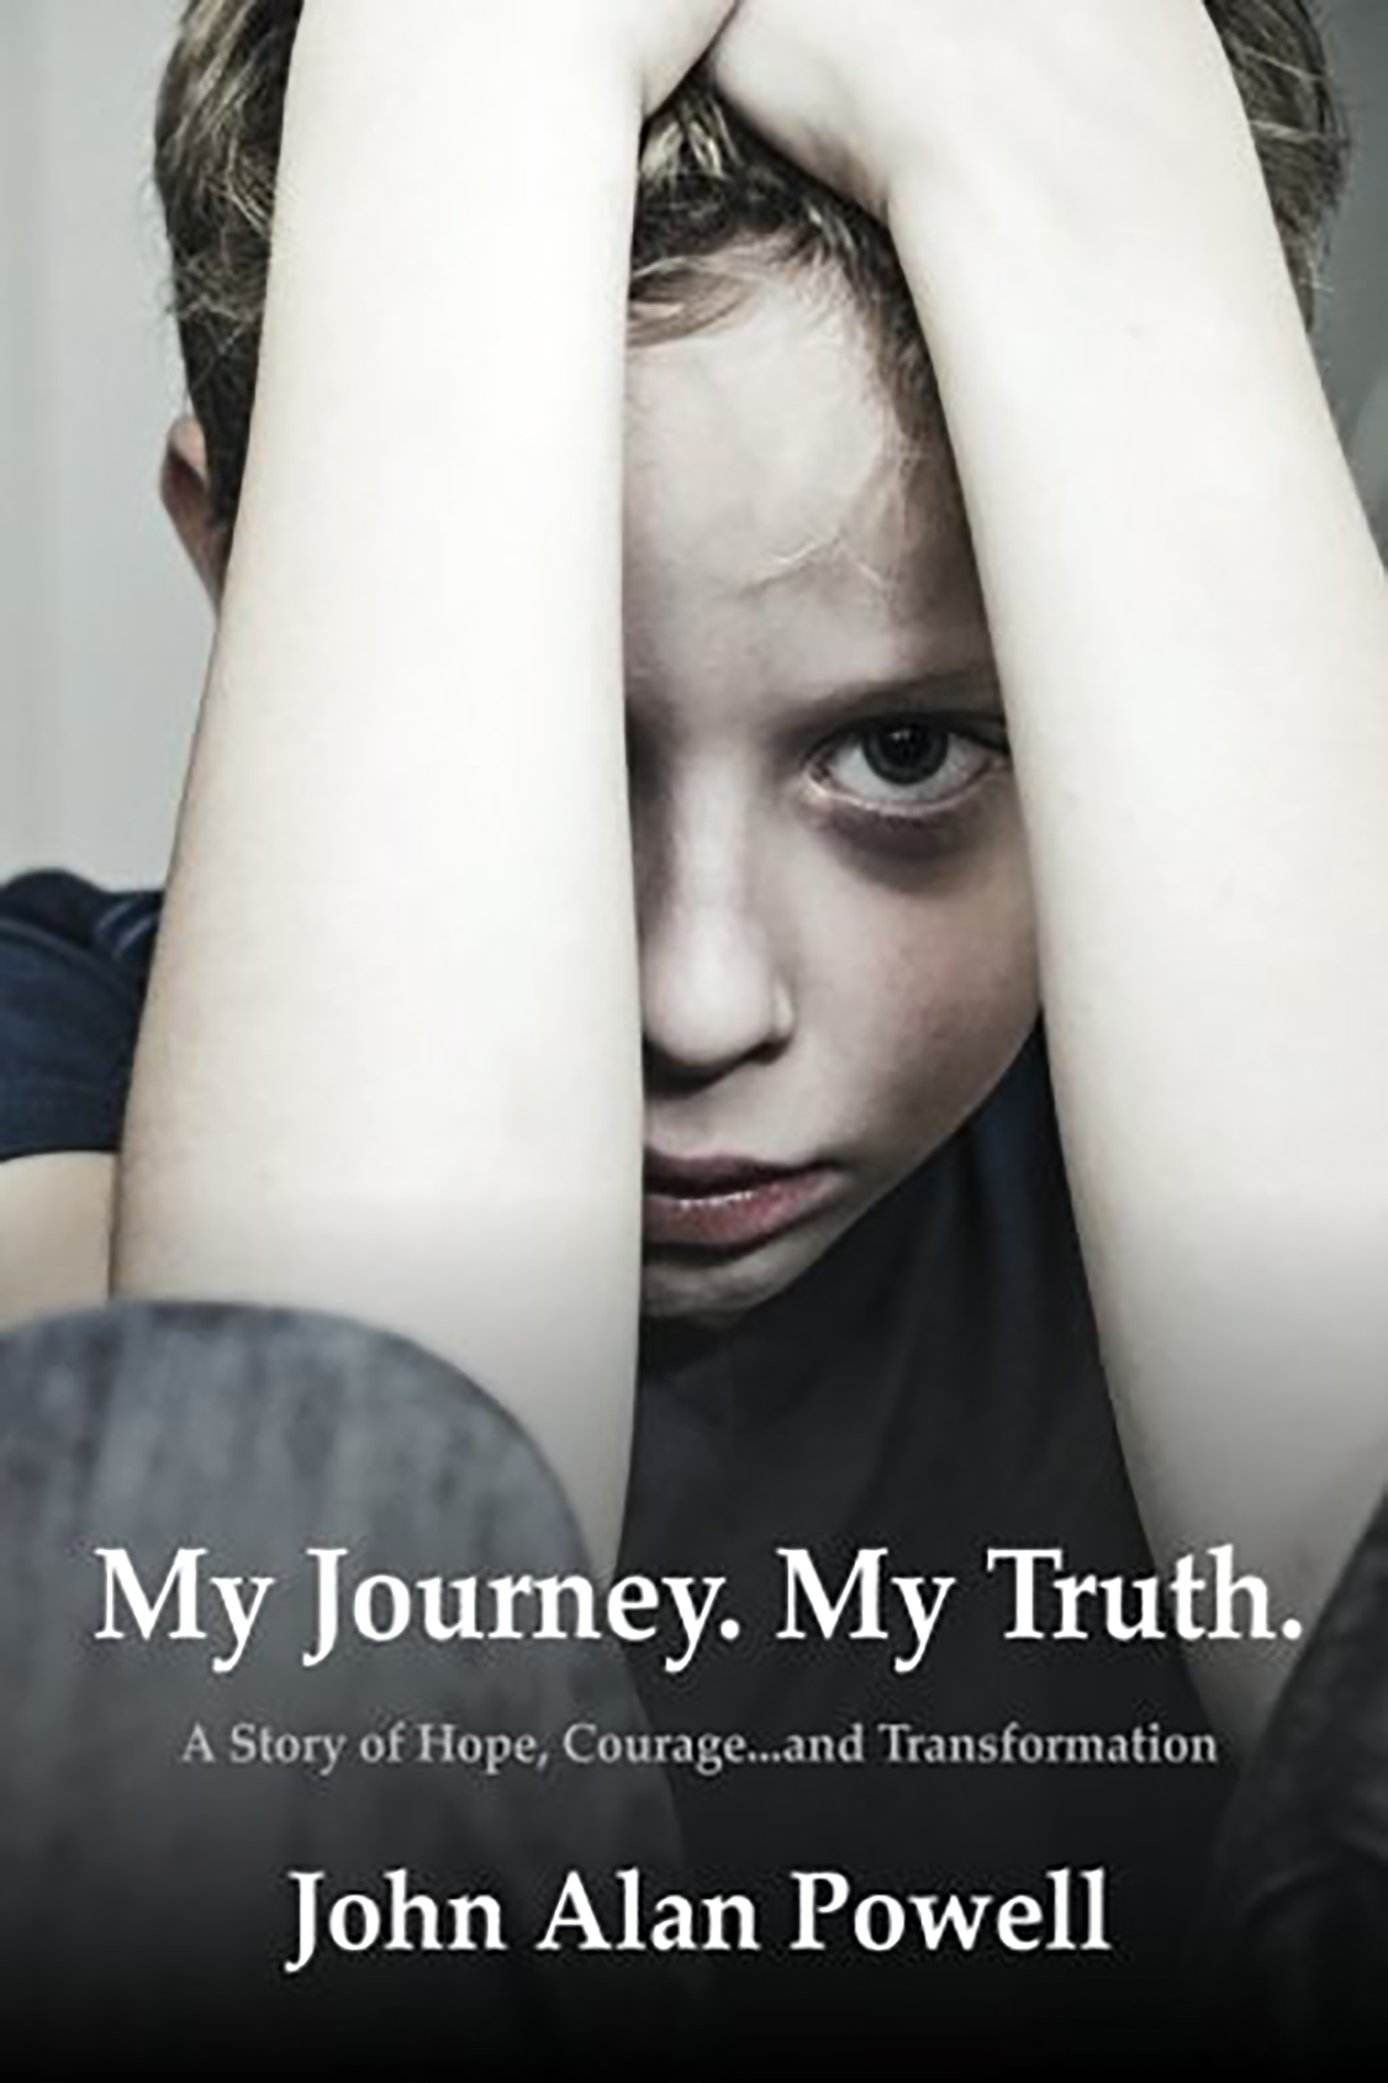 My Journey. My Truth.: A Story of Hope, Courage and Transformation by John Alan Powell